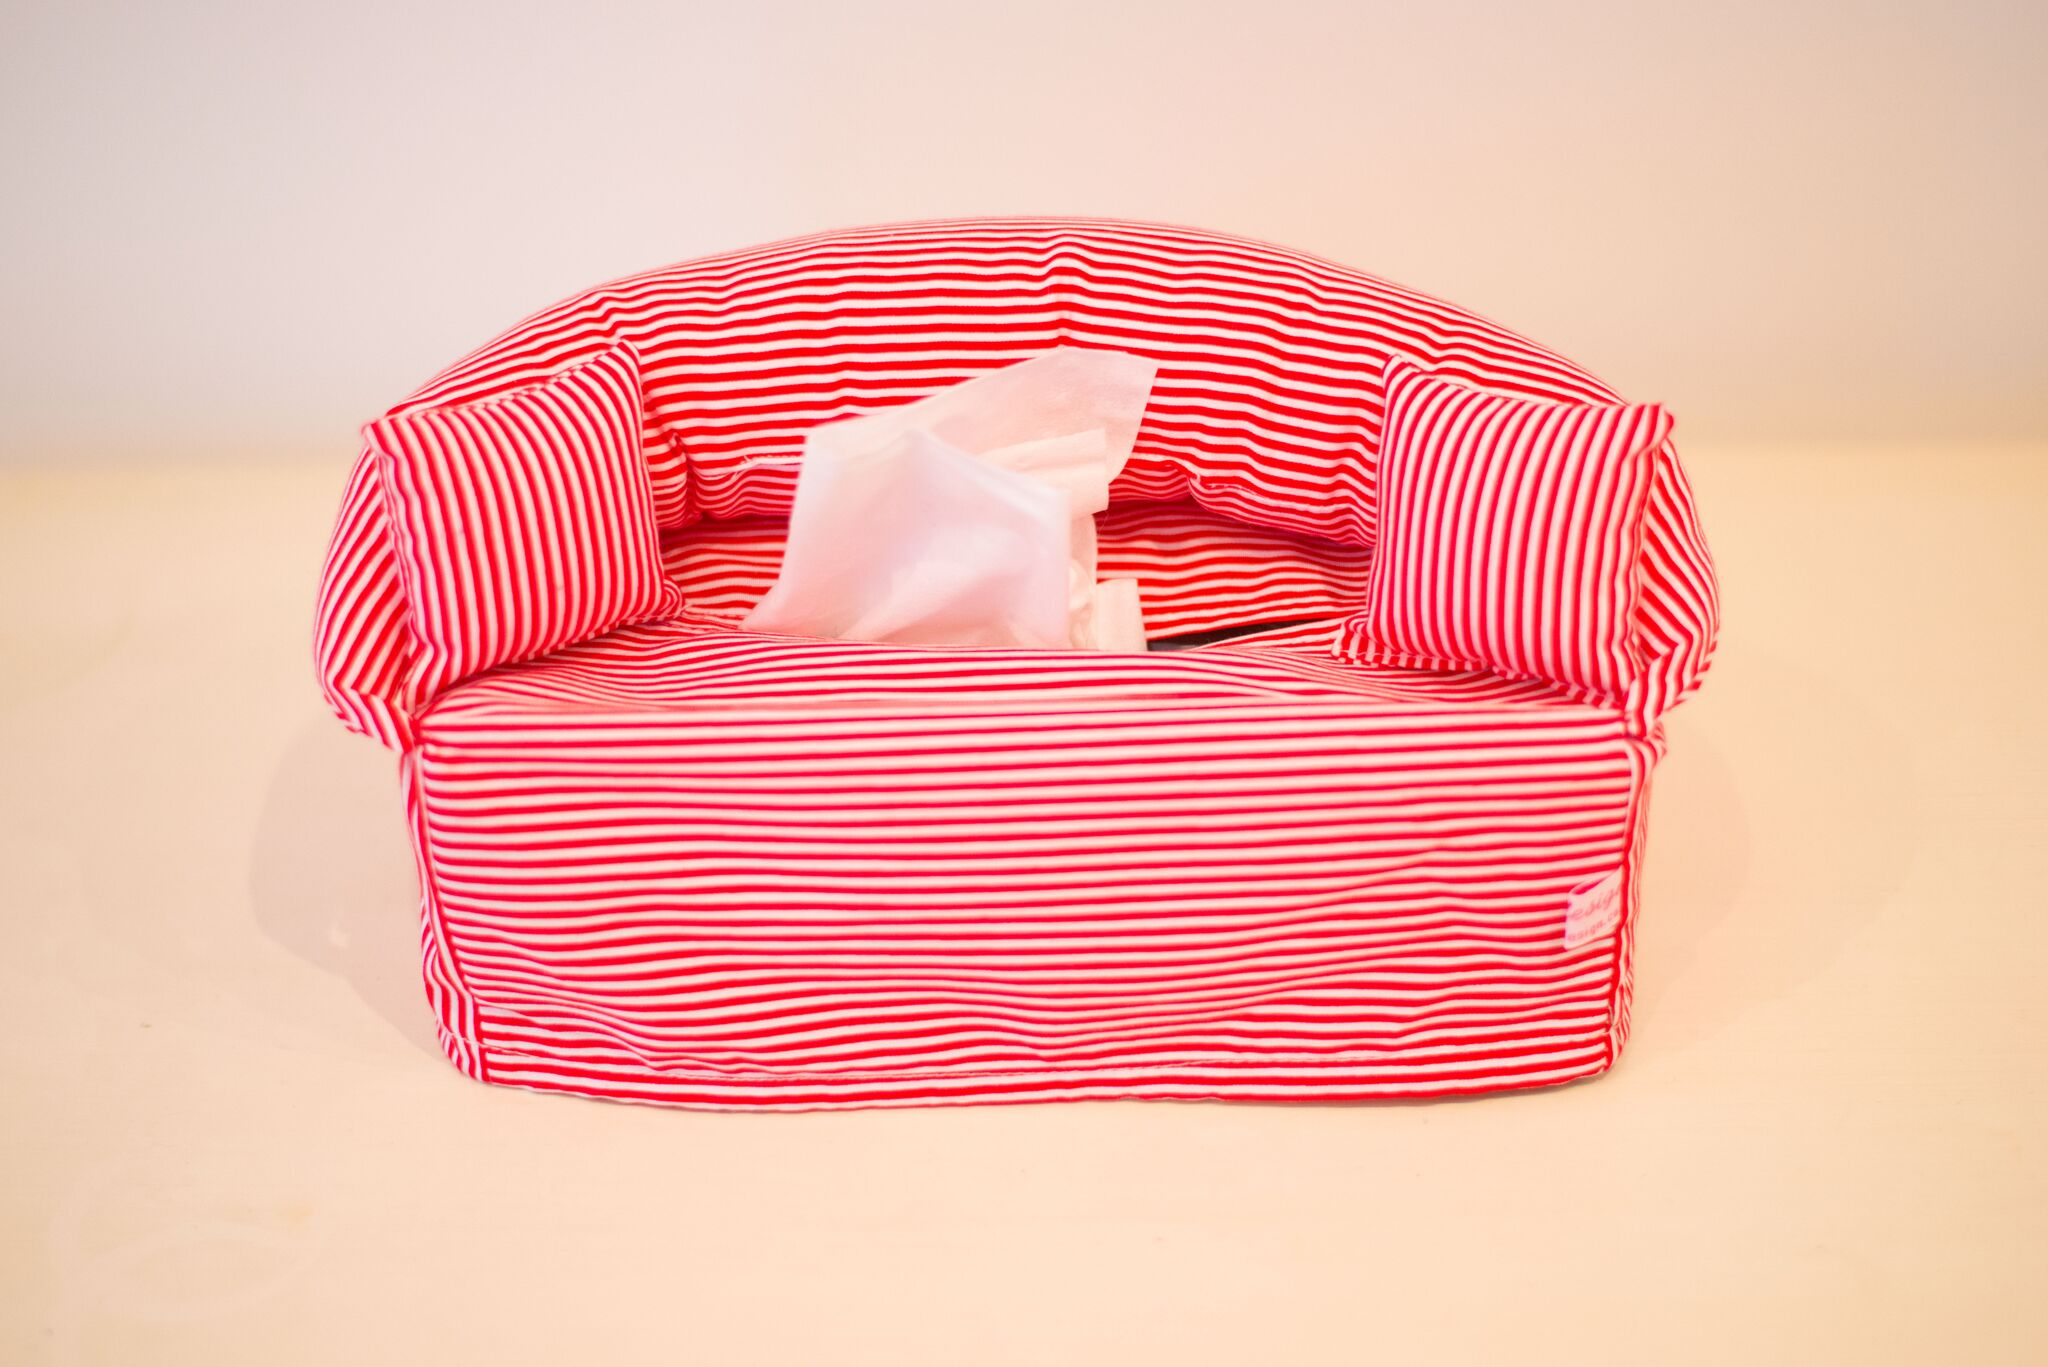 Red and White Striped Tissue Box